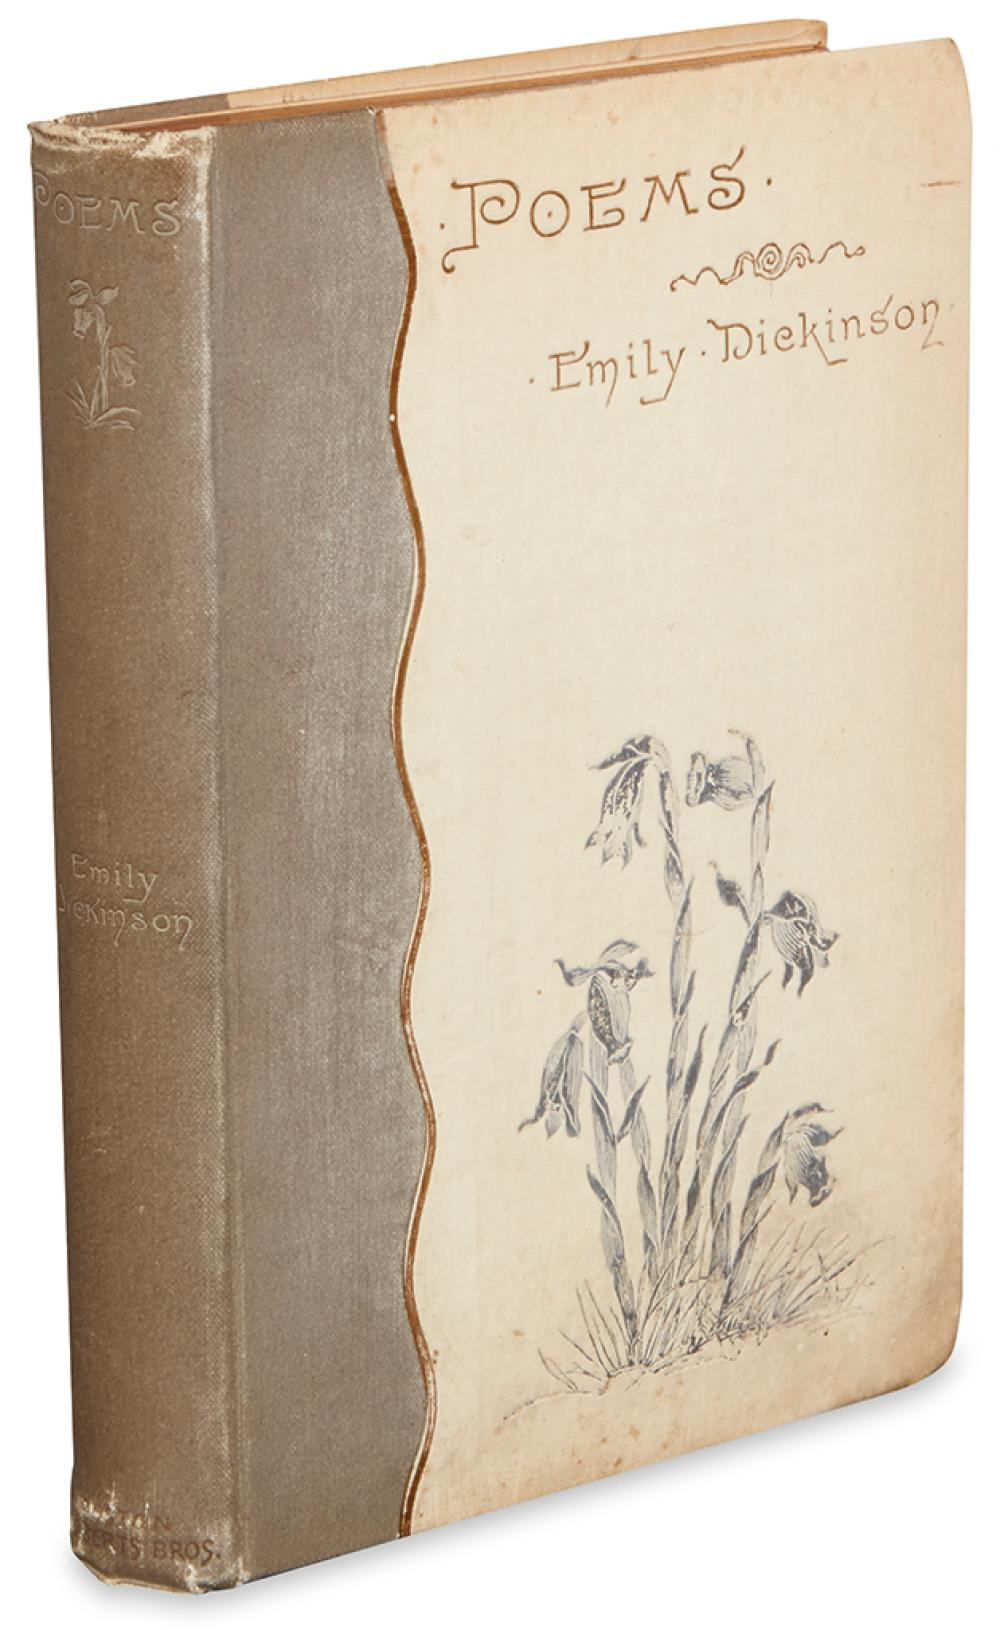 DICKINSON, EMILY. Poems.